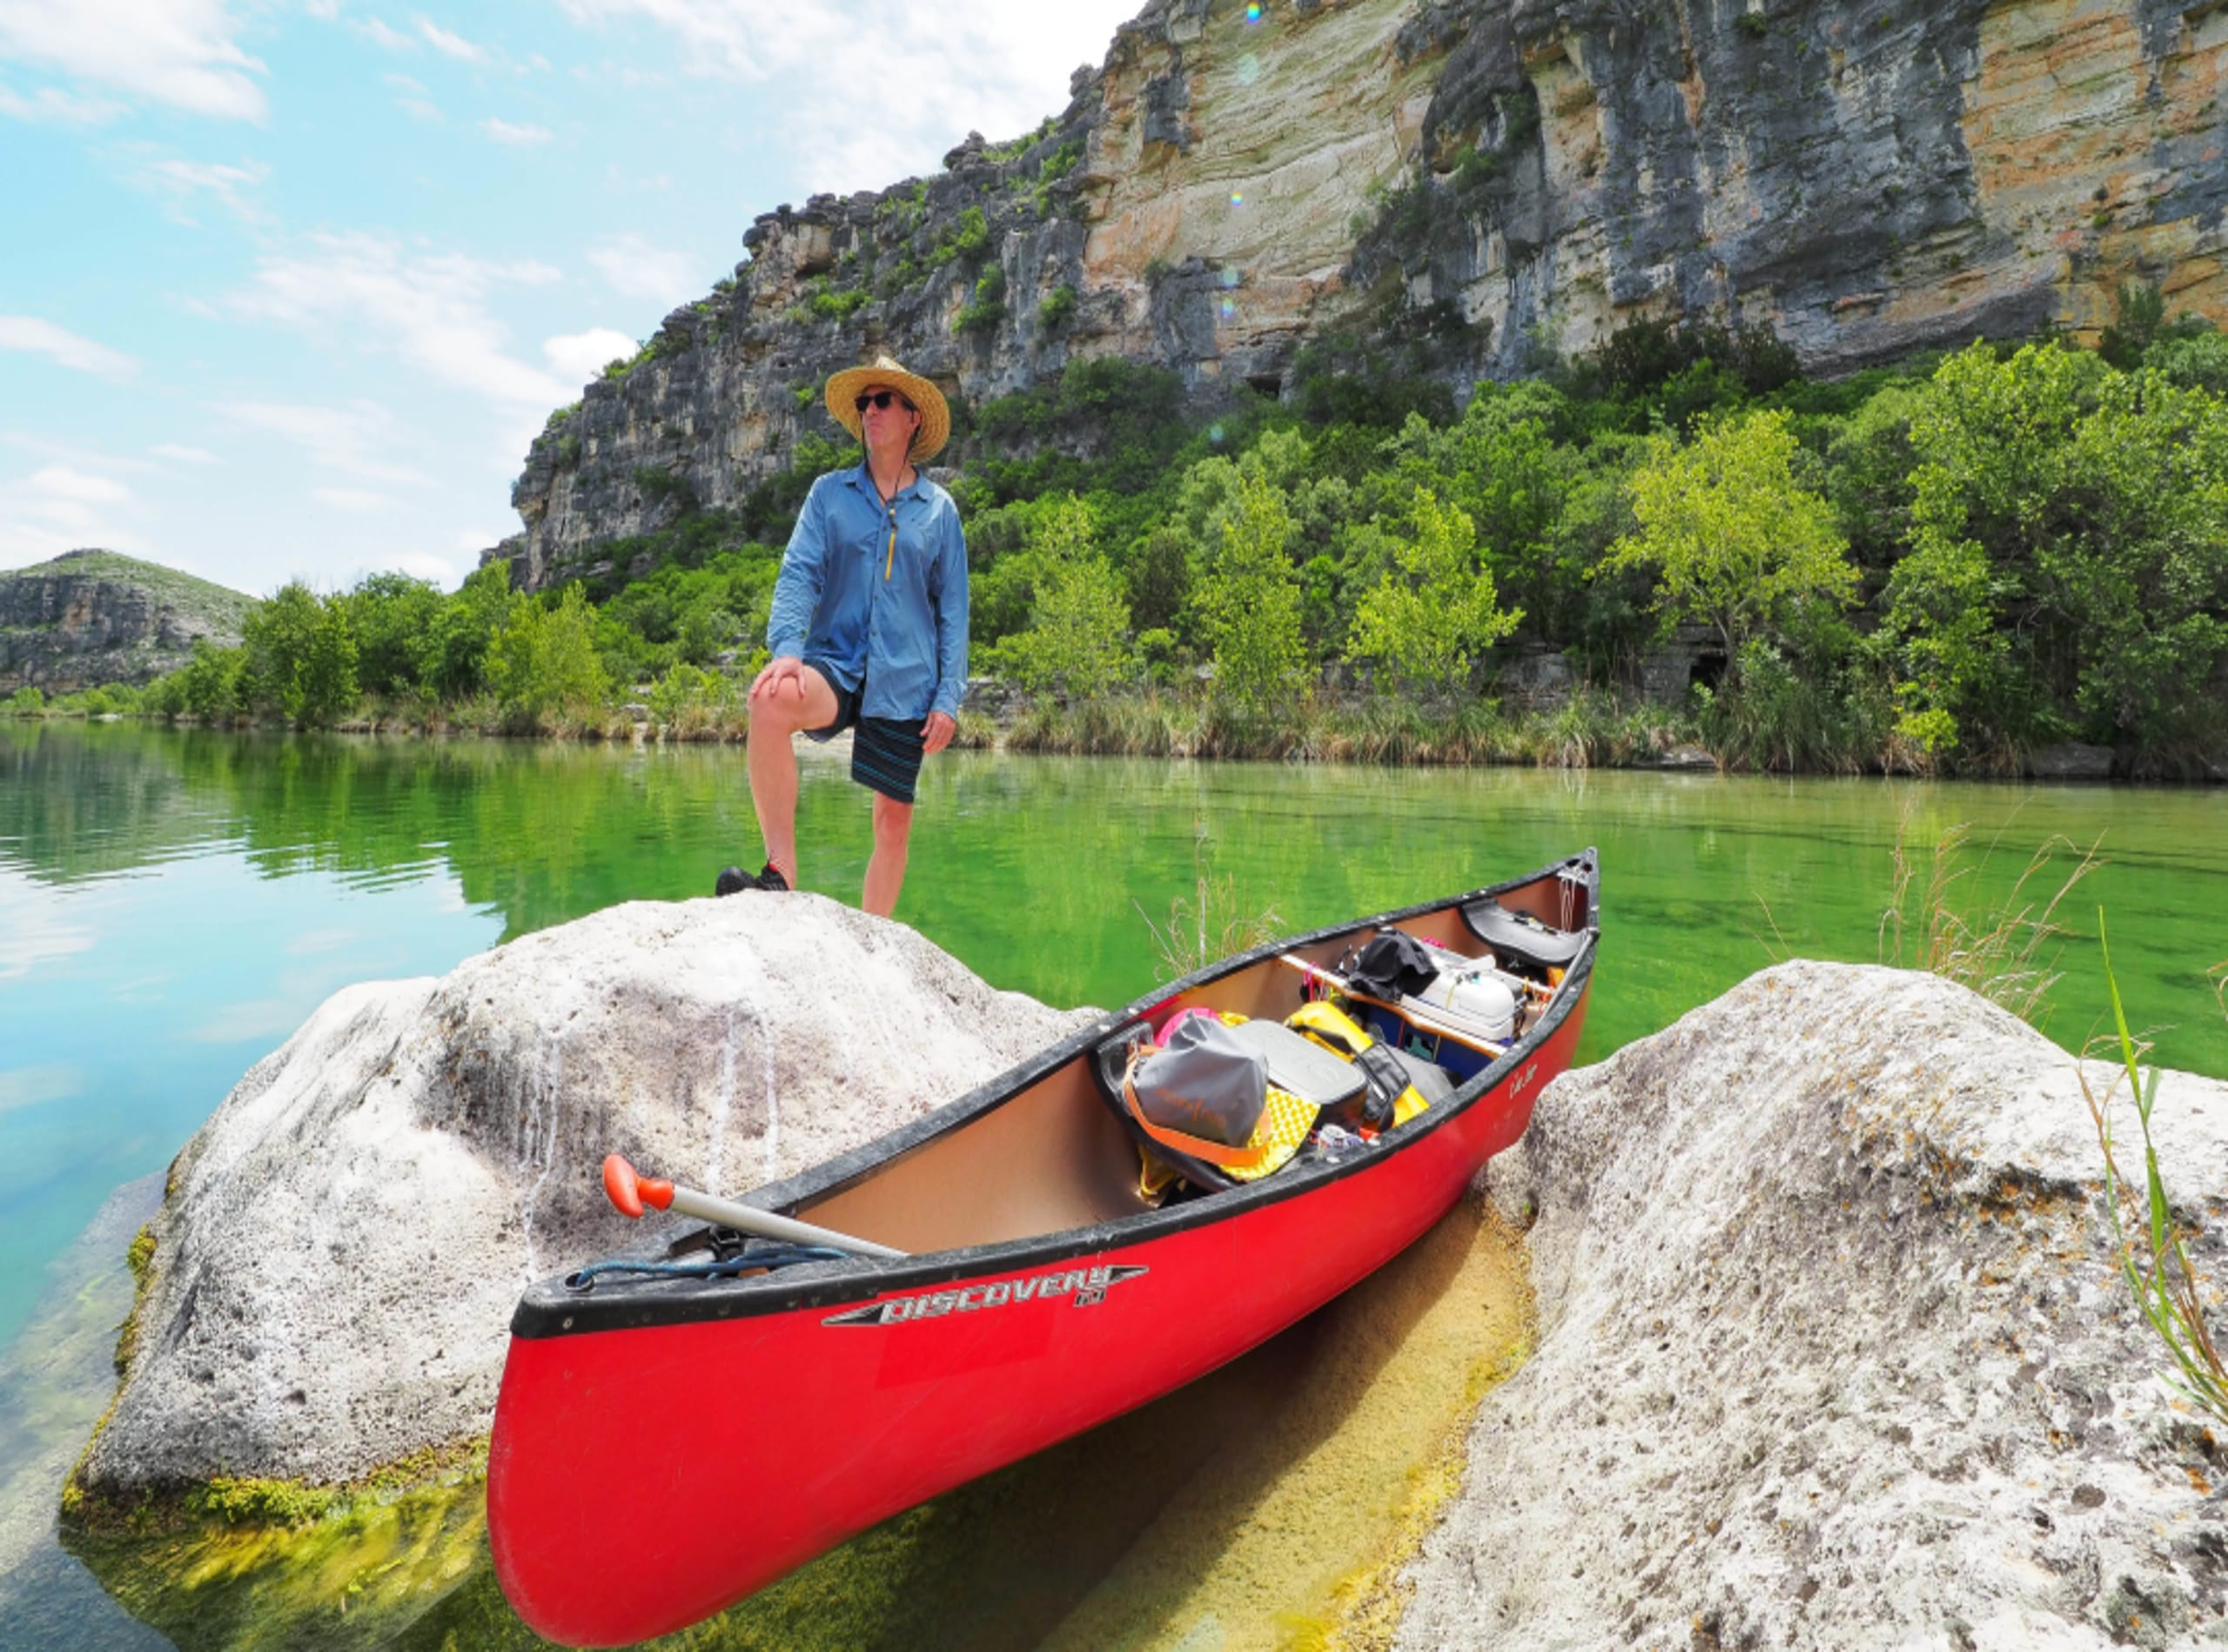 Want to paddle the Devils River? Check these tips before planning a trip